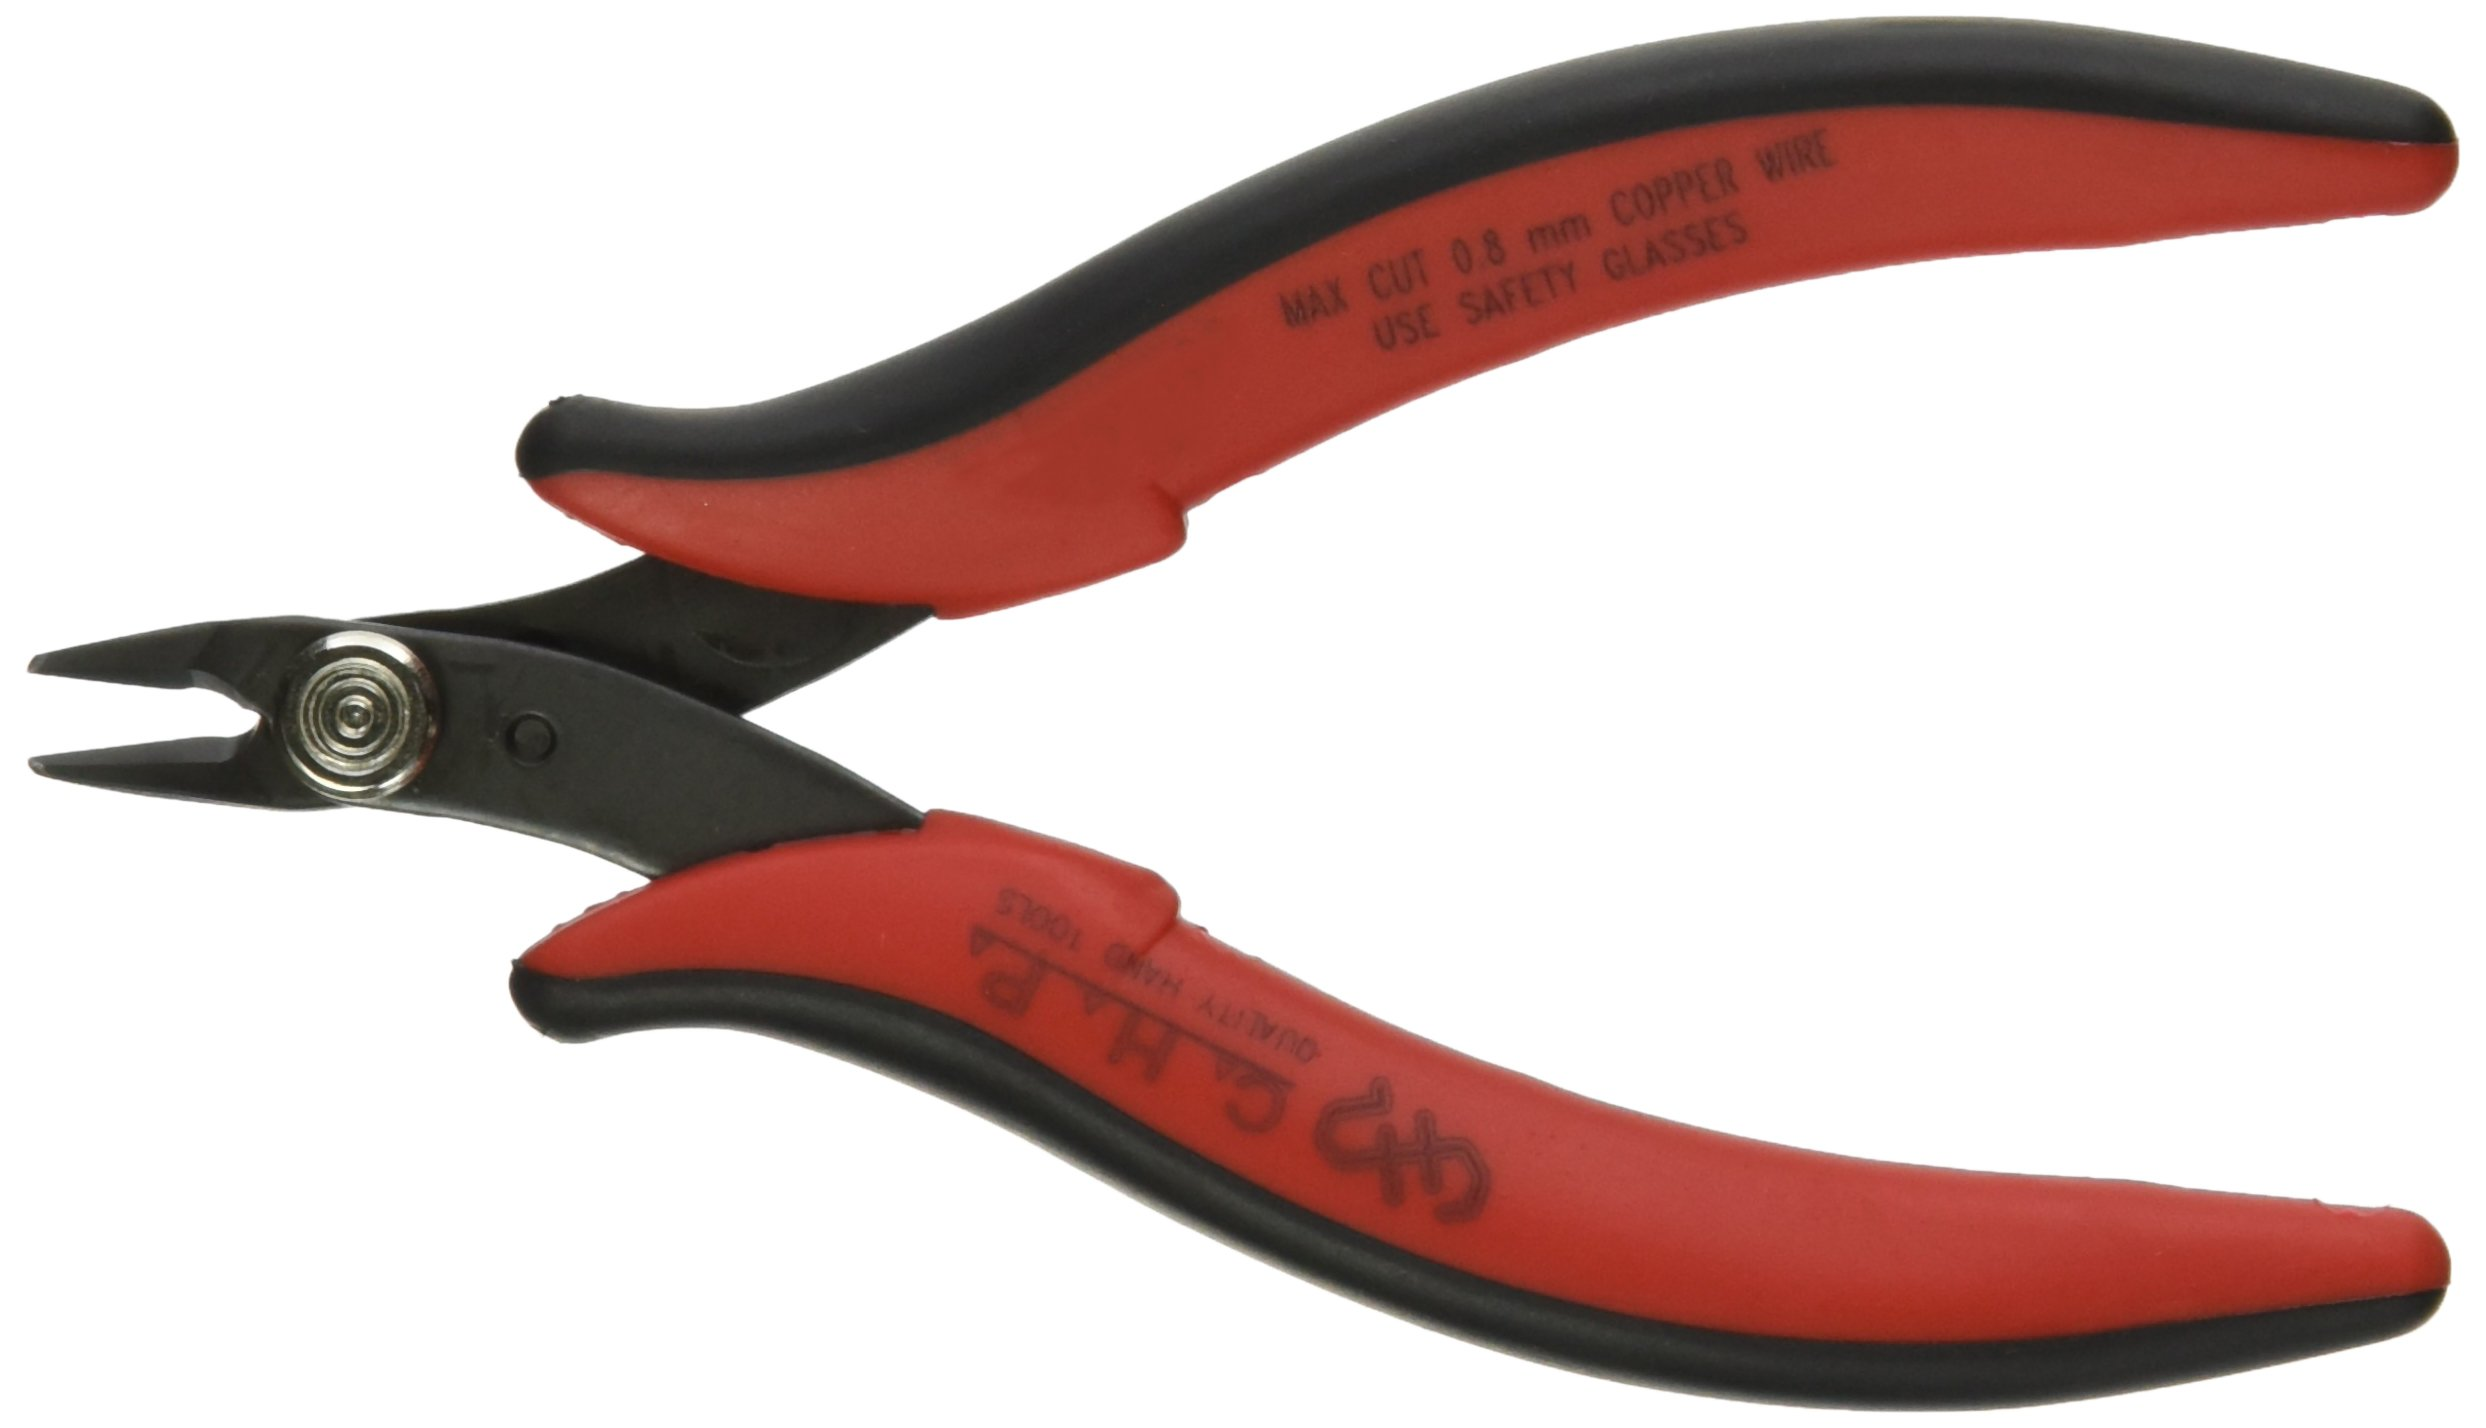 Hakko CHP TR-20-M Micro Soft Wire Cutter, Flush-cut, 2.0mm Hardened Carbon Steel Construction, 21-Degree Angled Jaw, 8mm Jaw Length, 20 Gauge Maximum Cutting Capacity